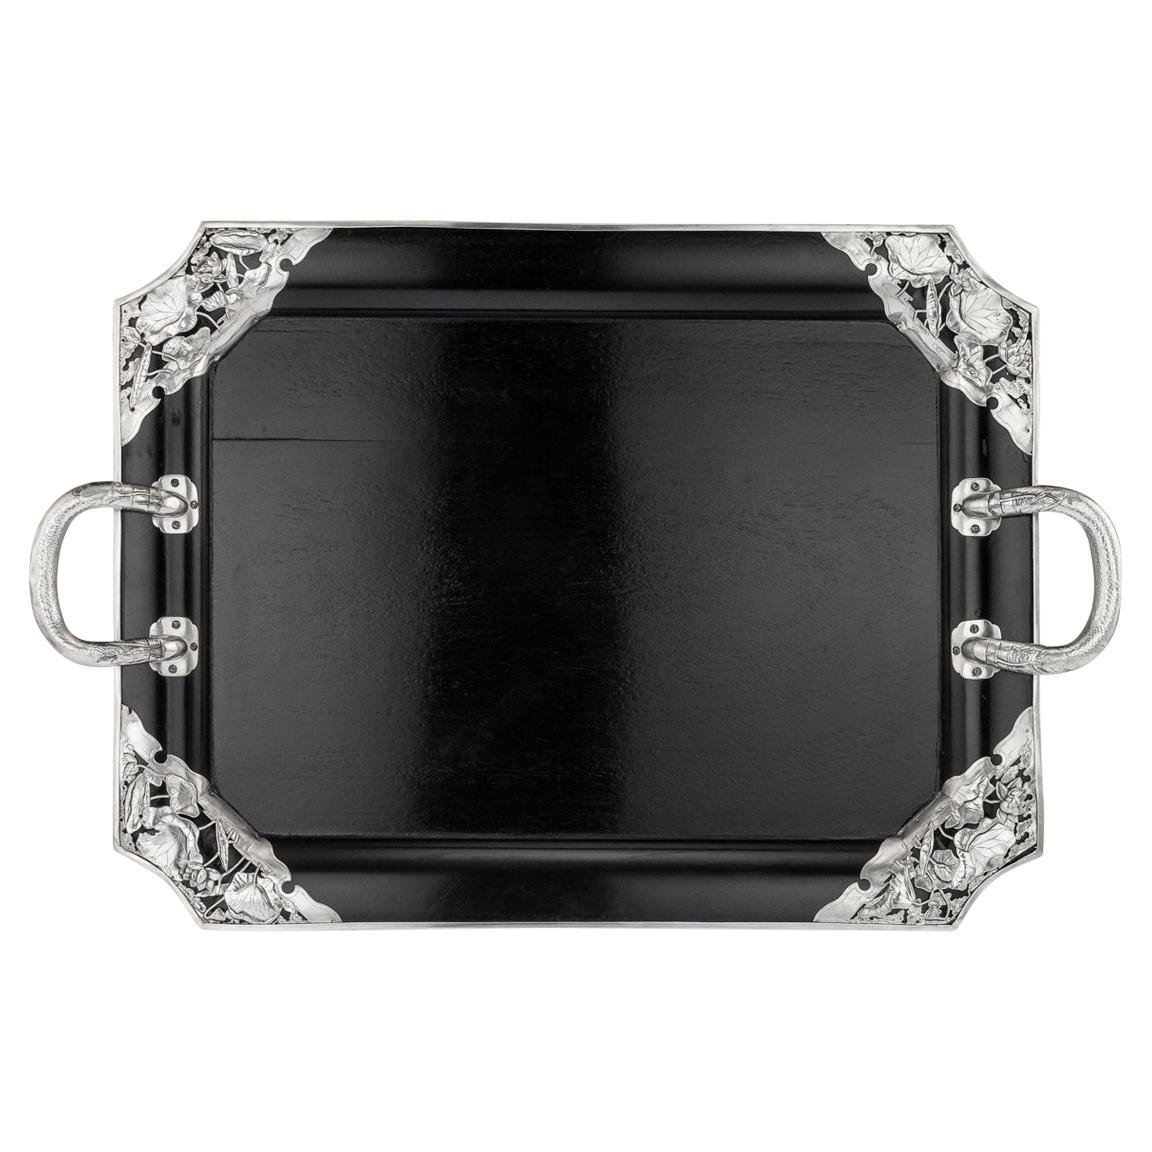 20thc Japanese Solid Silver on Wood Serving Tray, Arthur & Bond C.1900